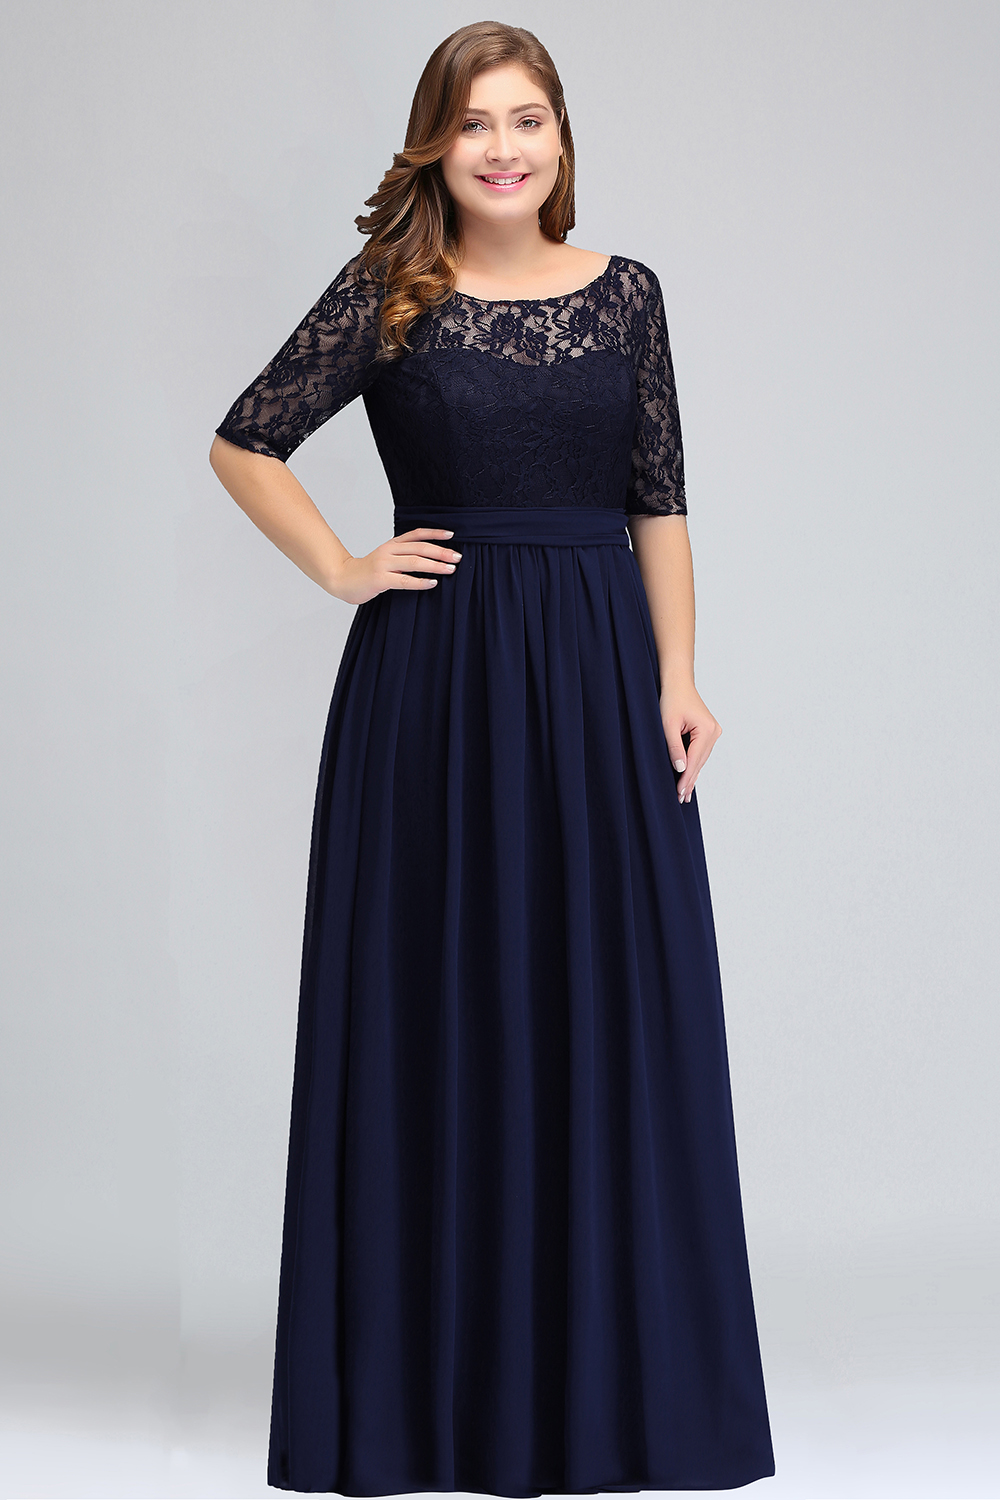 BMbridal Plus Size Elegant Half-Sleeves Lace Bridesmaid Dresses with Bow